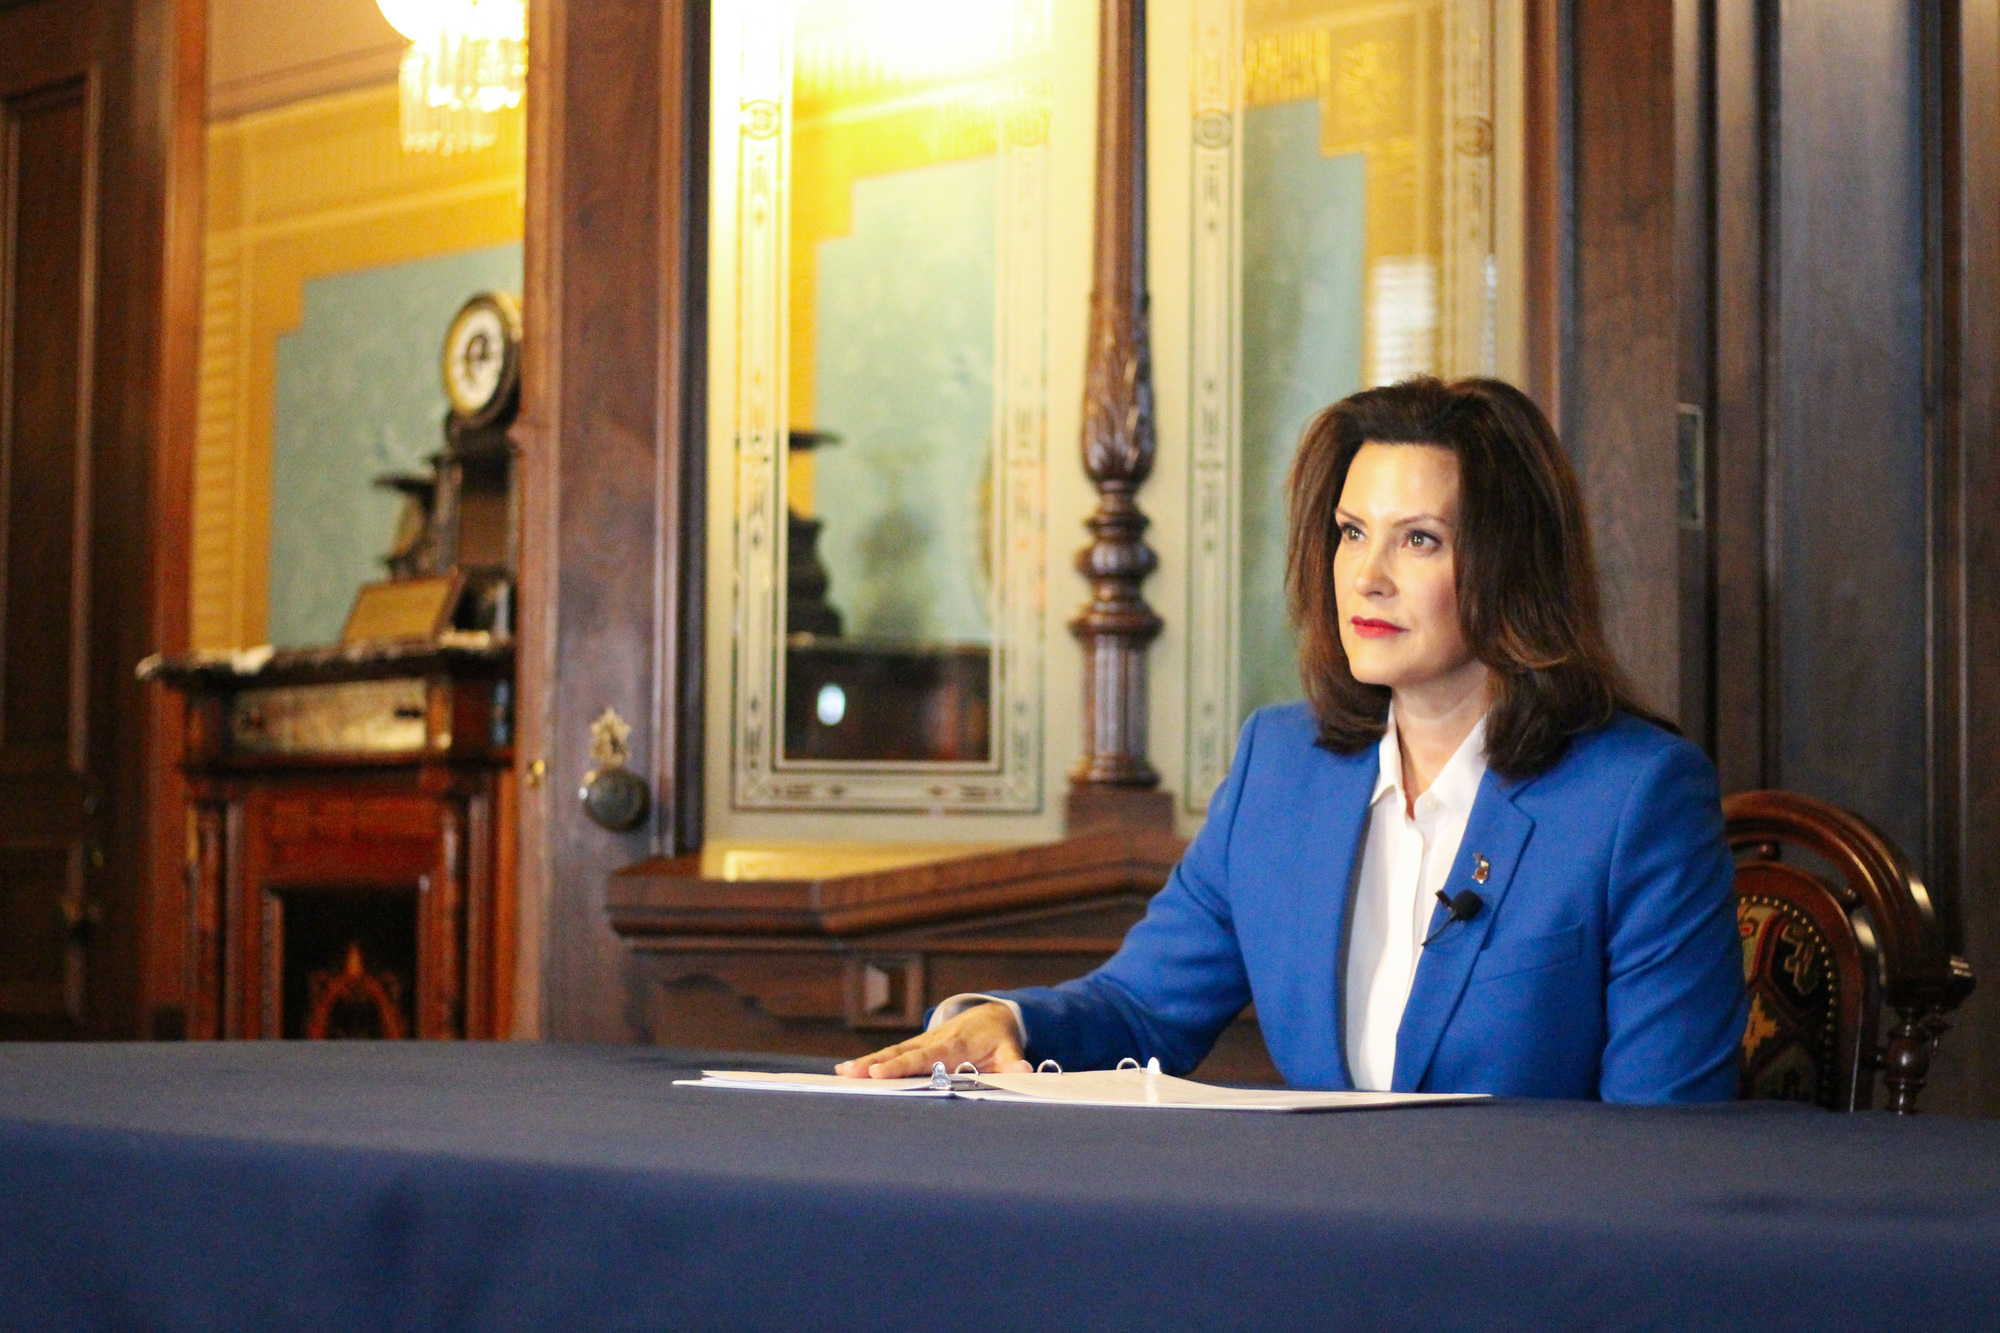 MICHIGAN GOVERNOR GRETCHEN WHITMER PROPOSED NEW CORONAVIRUS AID.